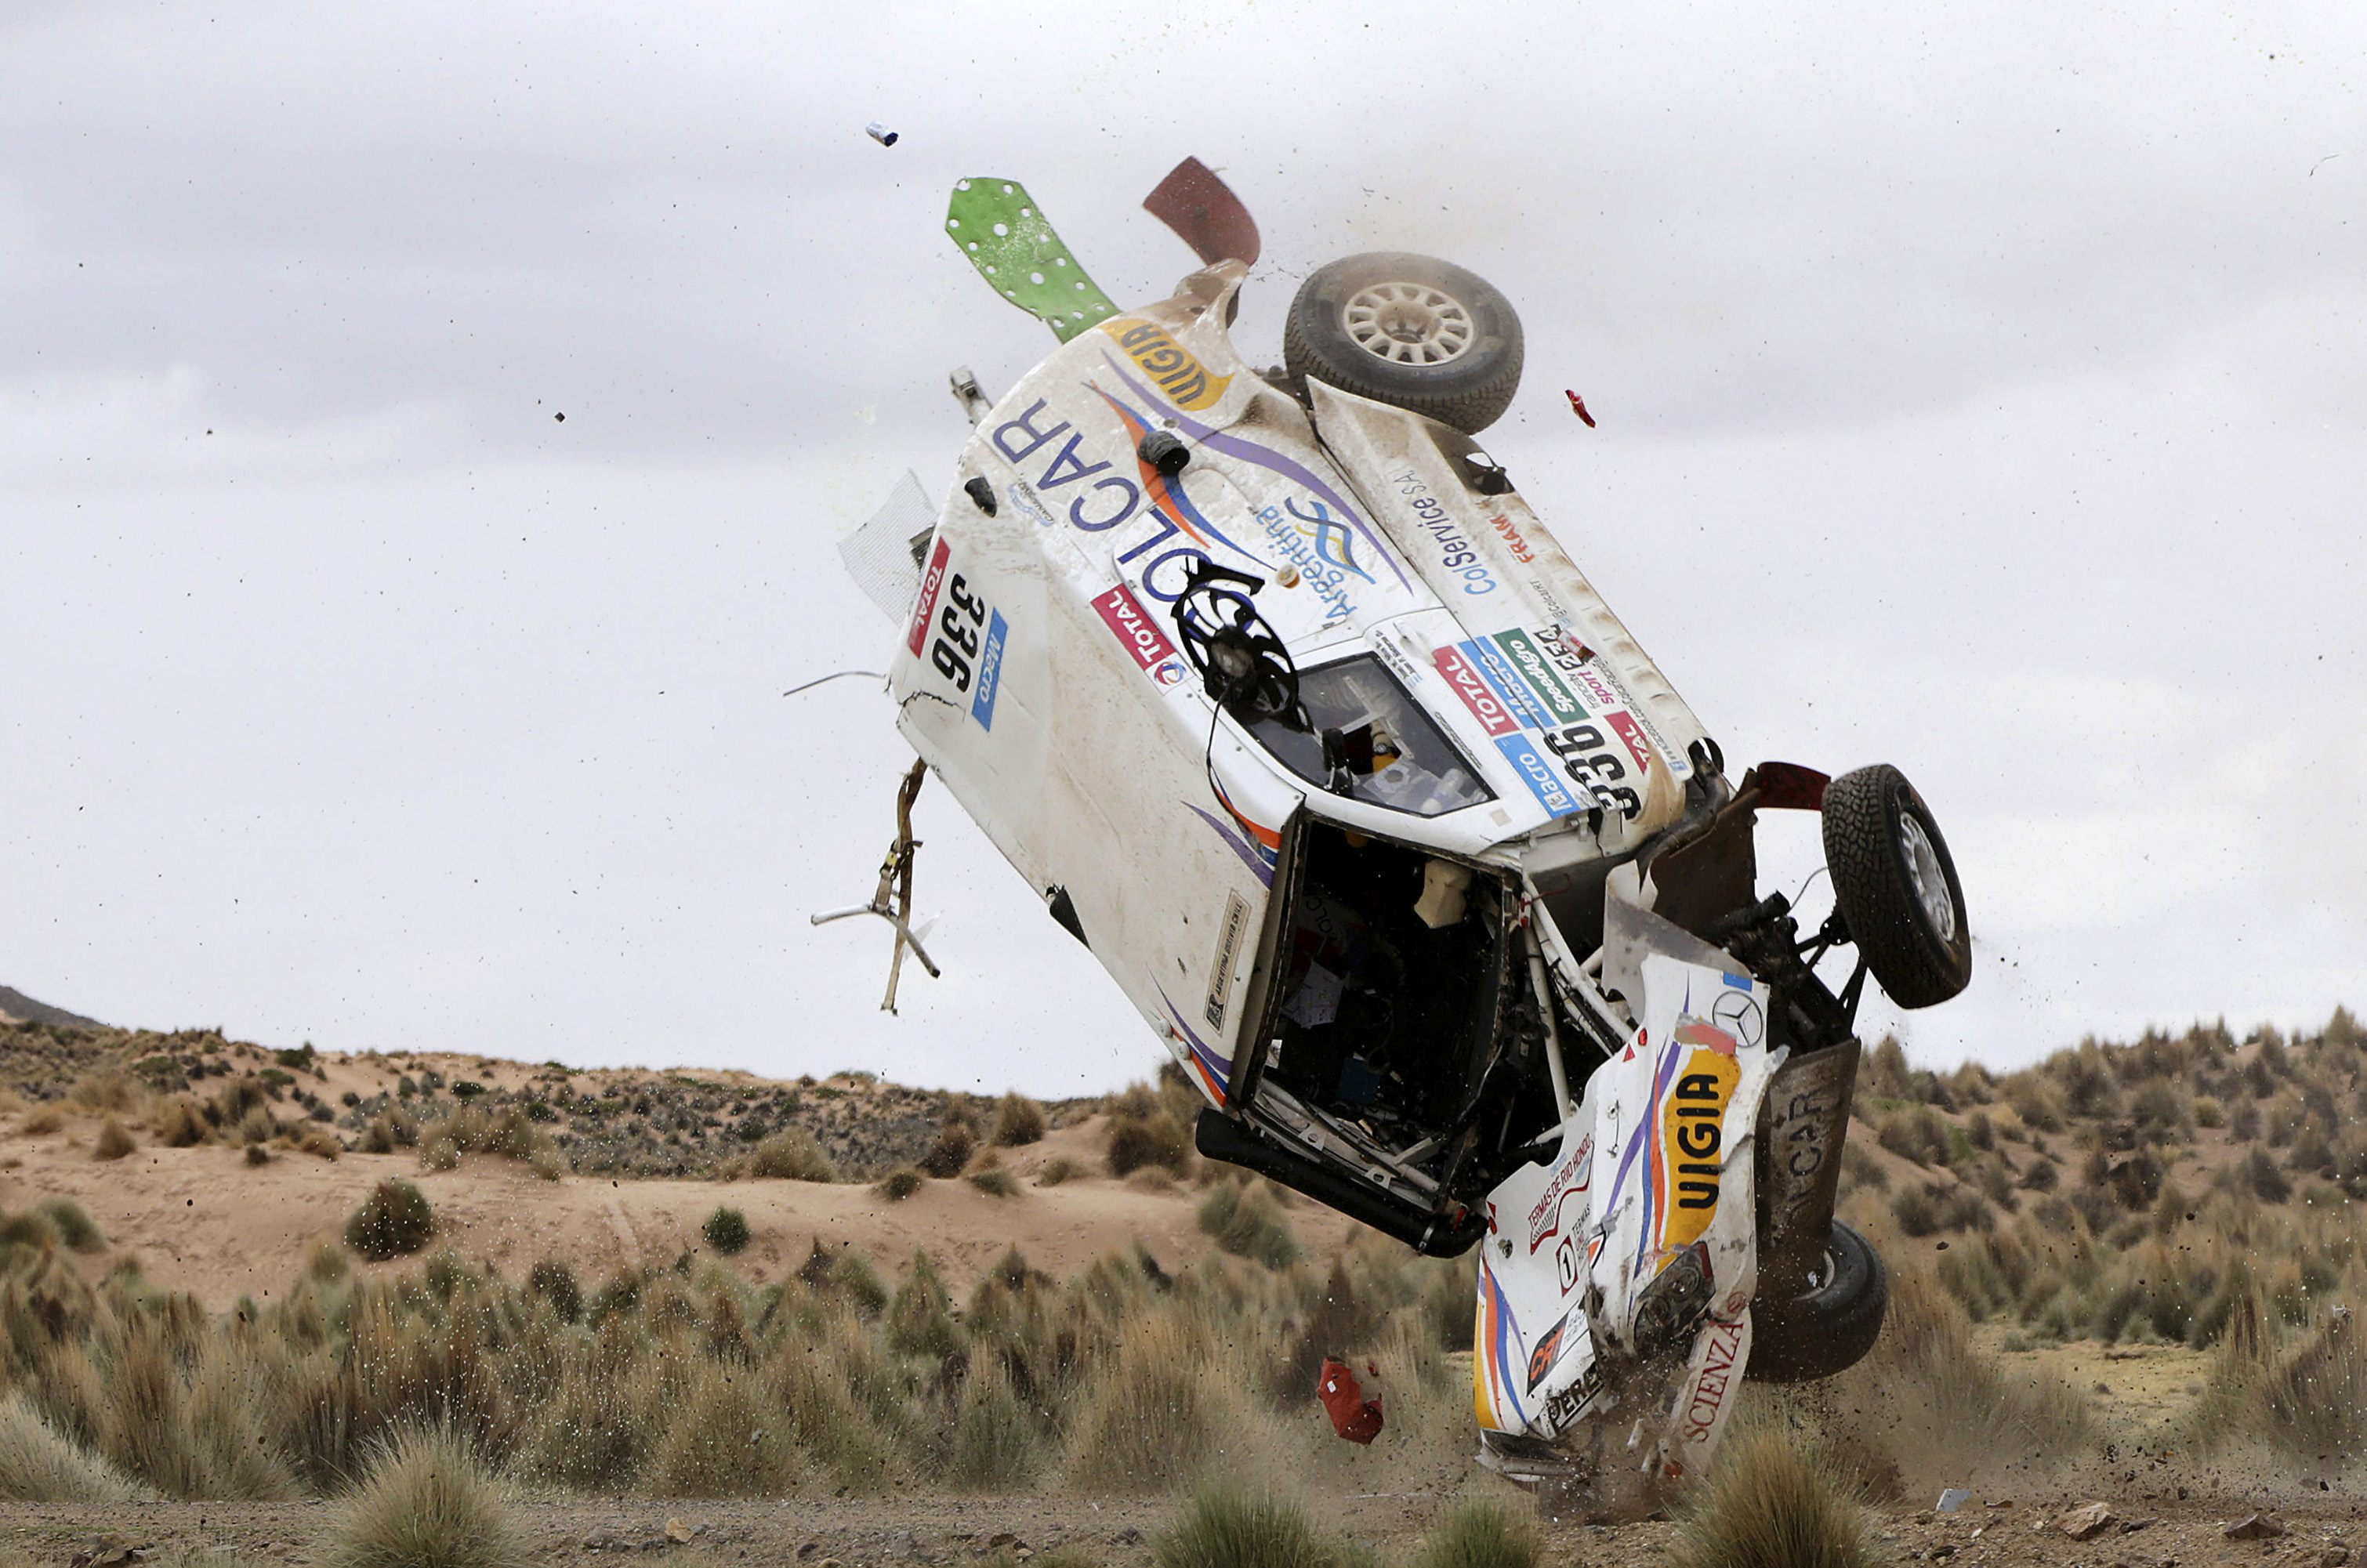 Argentine Juan Manuel Silva and Pablo Sisterna (not pictured) crash in their Mercedes car during the 7th stage of the Dakar Rally from Iquique to Uyuni